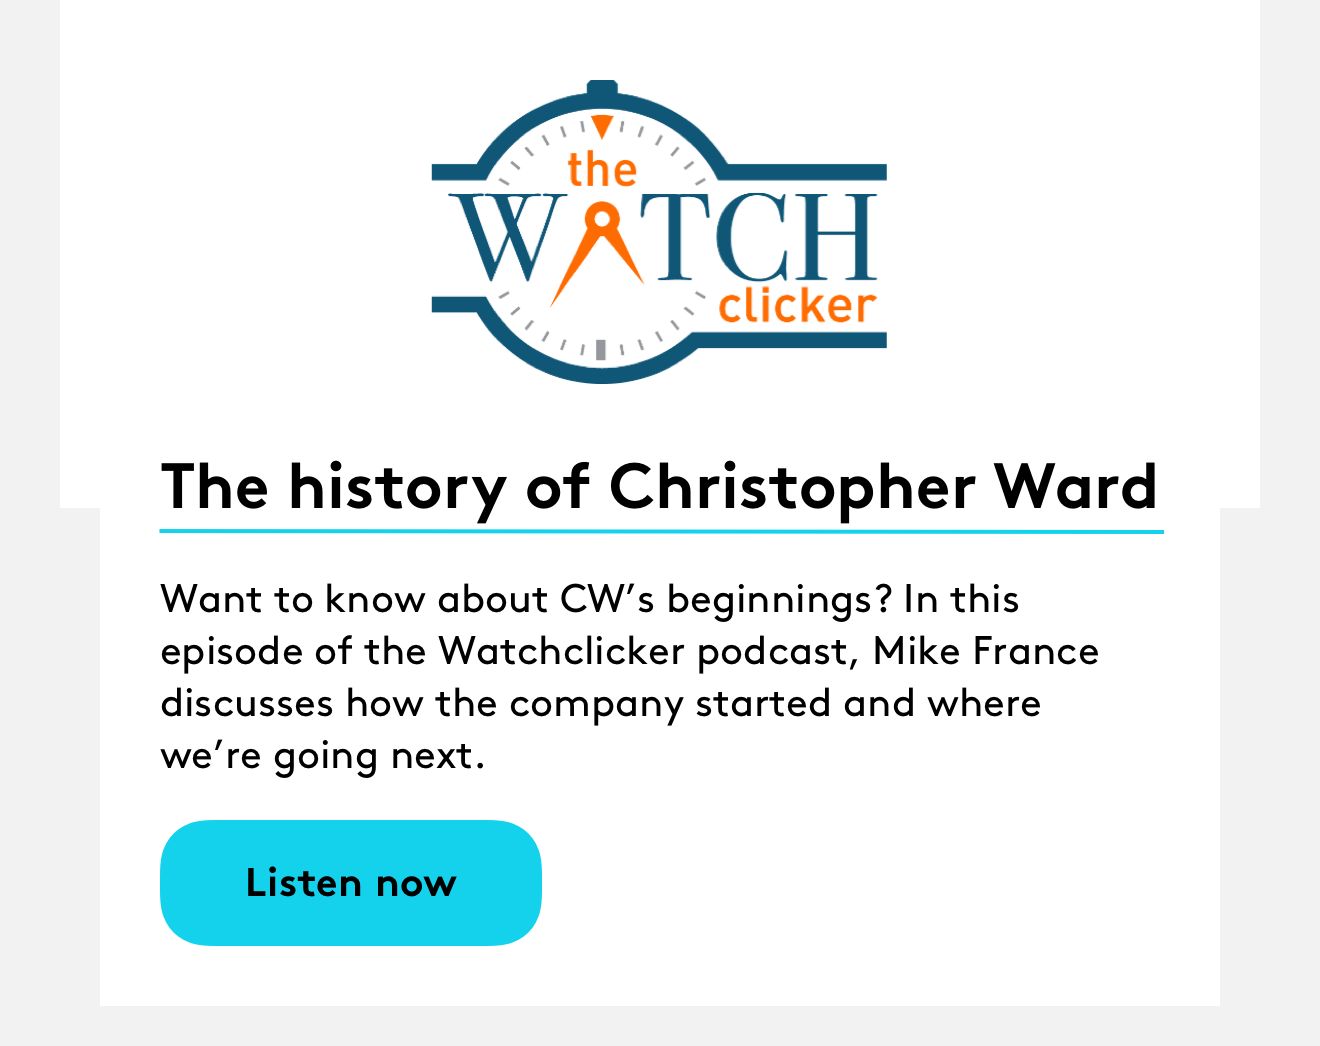 The history of Christopher Ward